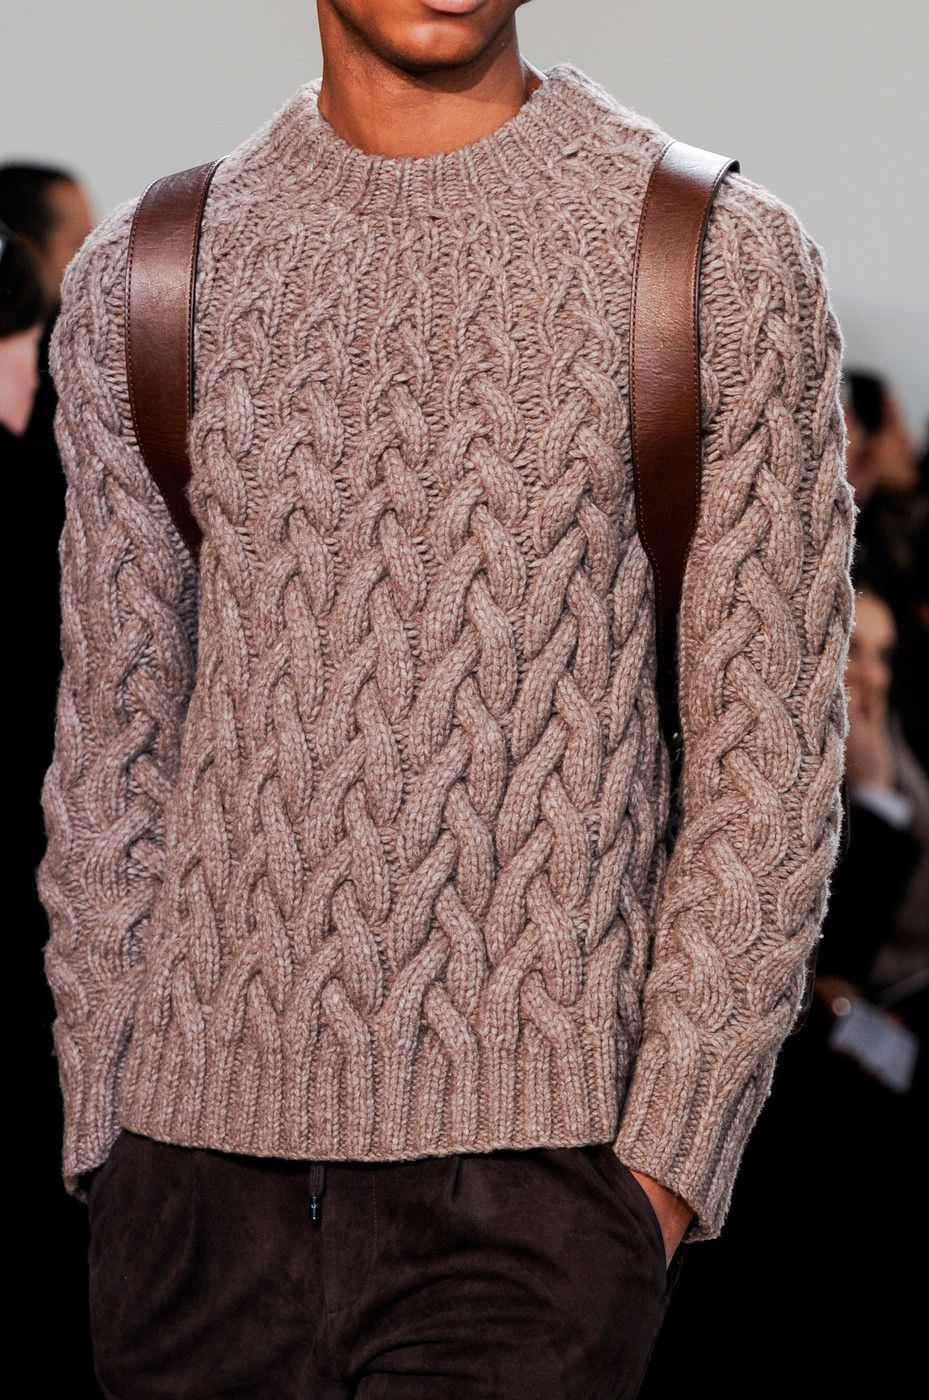 Michael Kors at New York Fashion Week Fall 2014 | Cable sweater ...